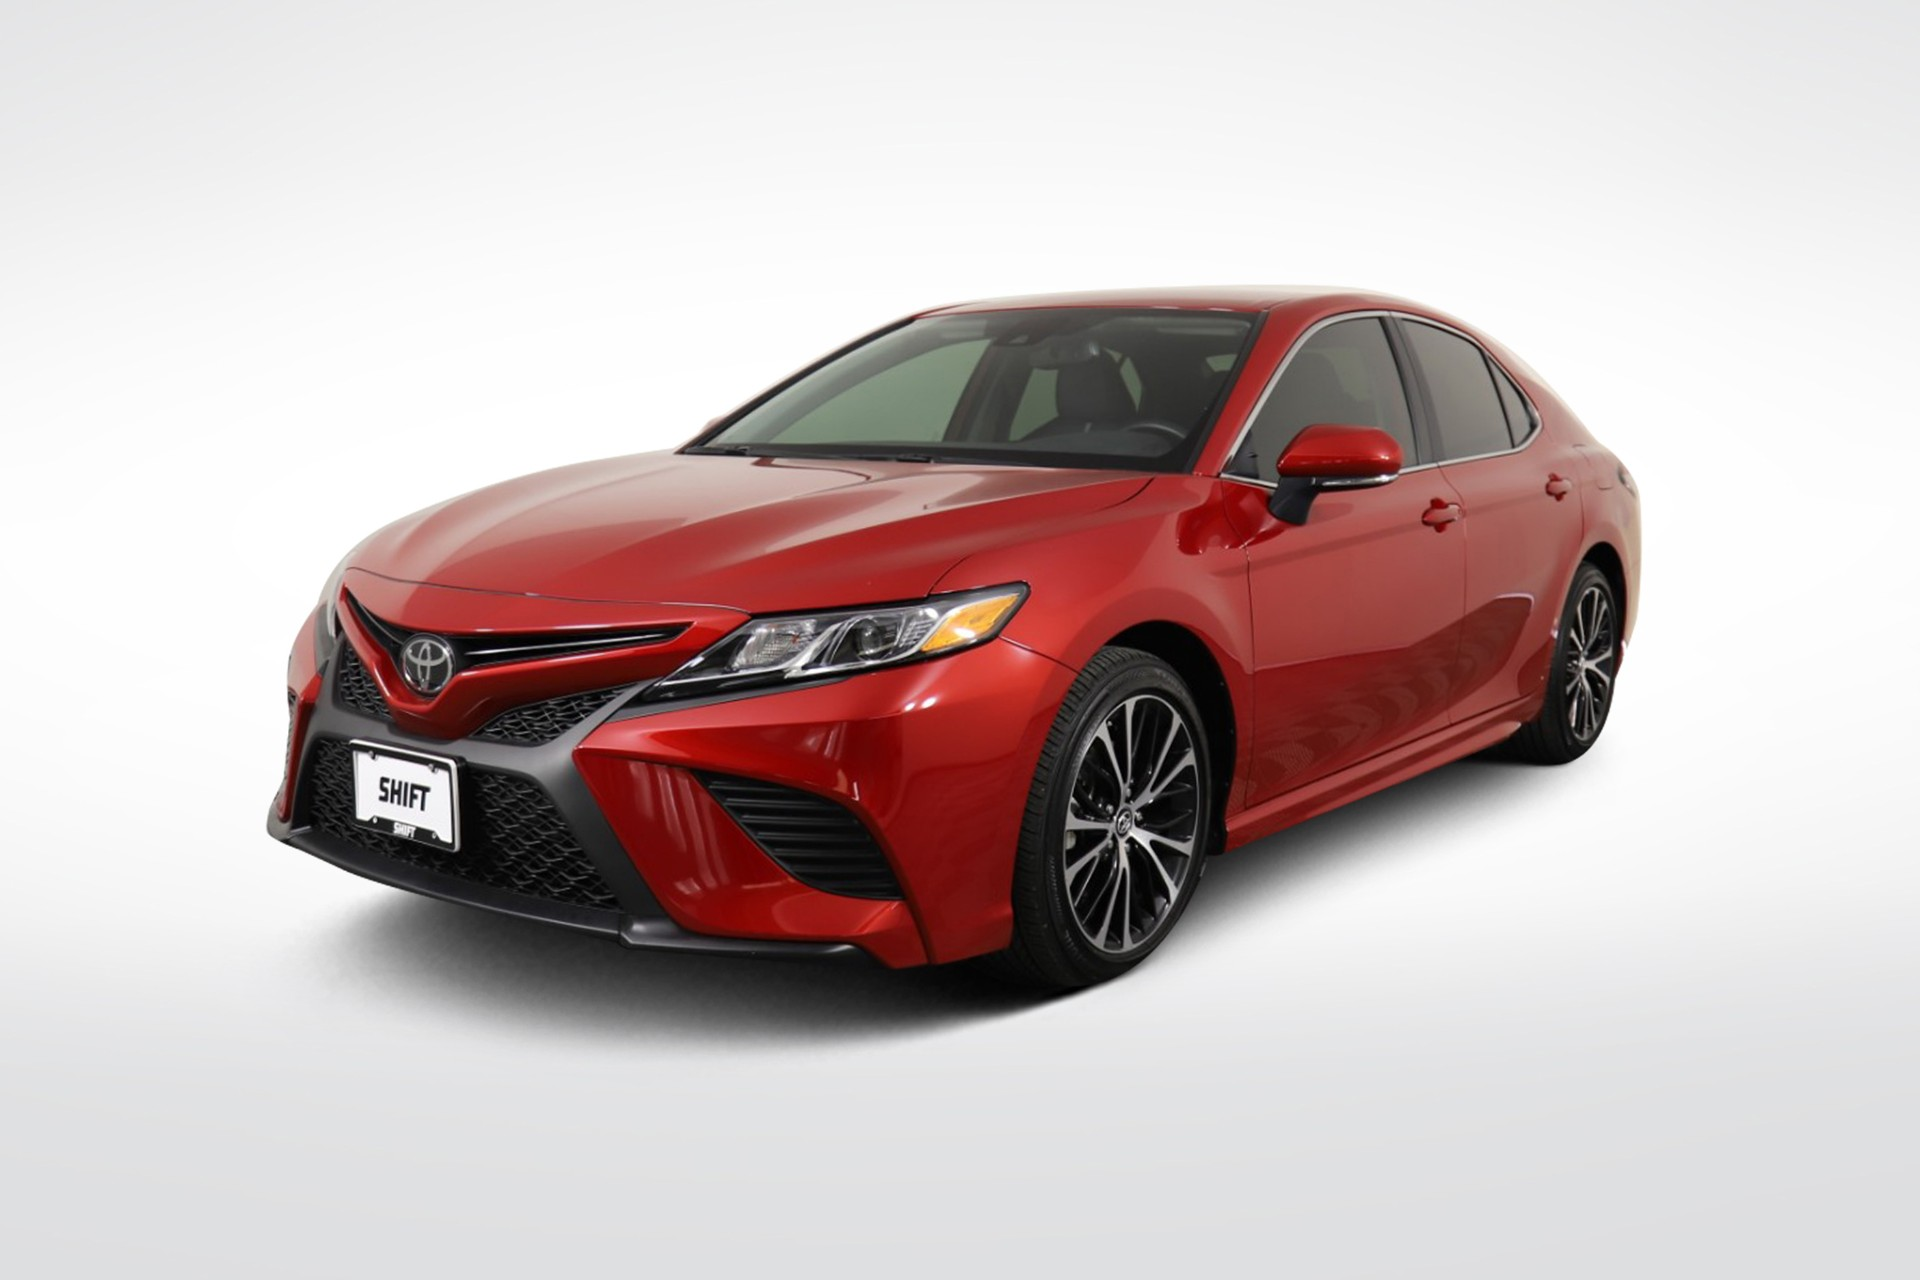 2019 Toyota Camry SE (from $23,950)